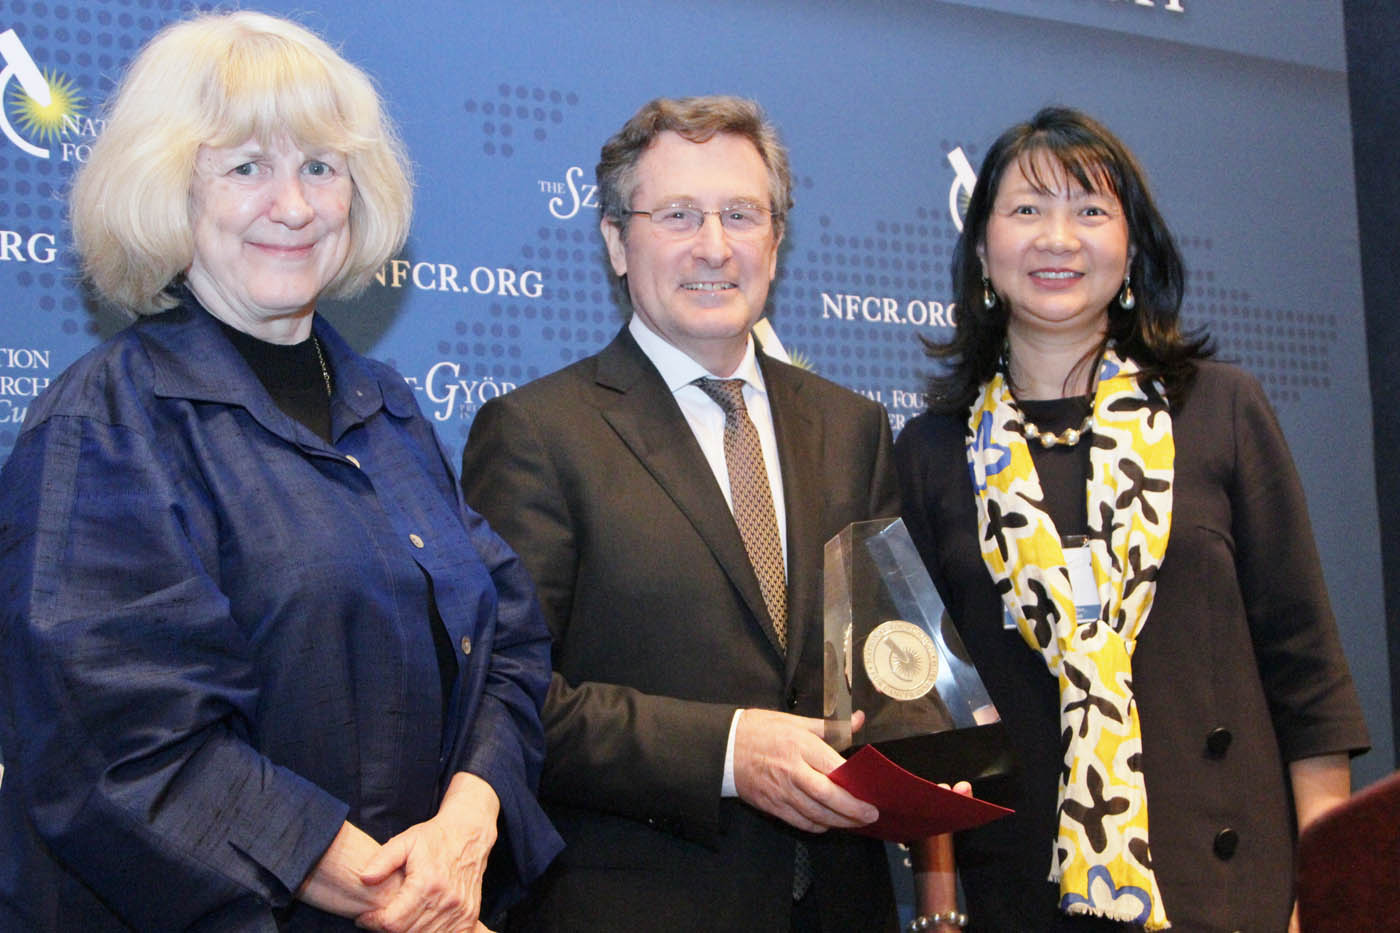 Dr. Michael Hall receiving award from last year's winner, Dr. Mary-Claire King, and Dr. Sujuan Ba from NFCR